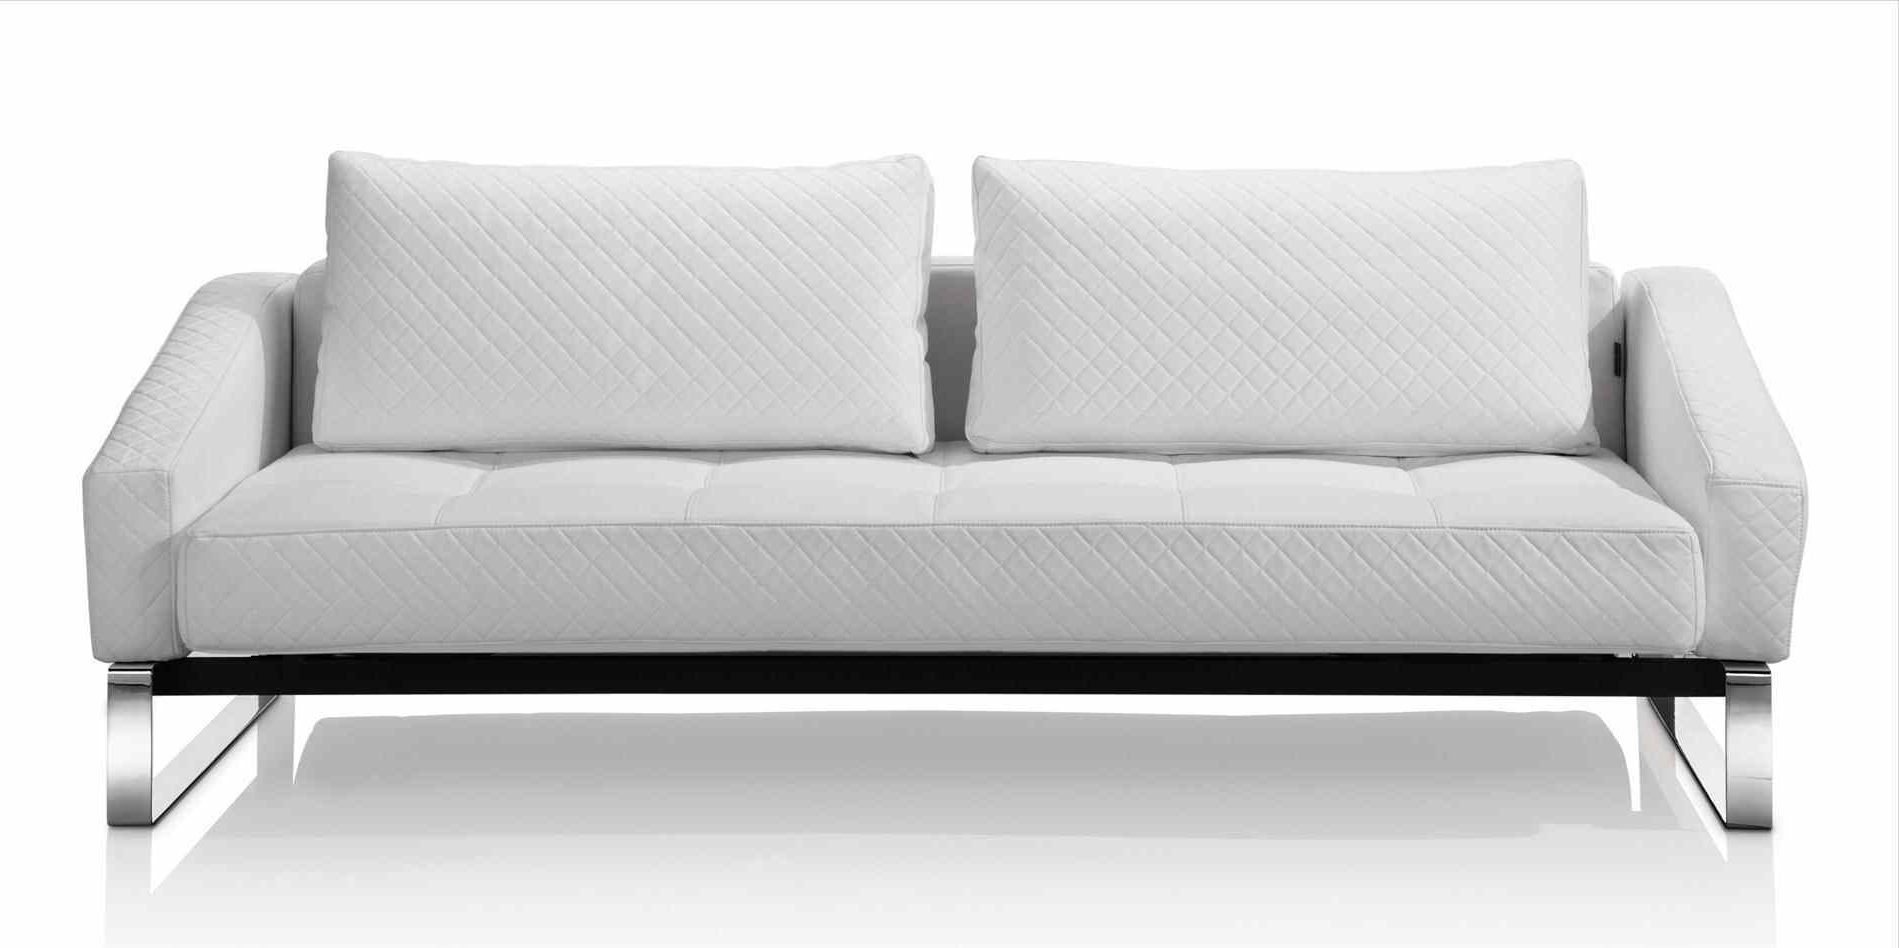 White Modern Sofas Intended For Current Sofa : Sofa Background White Modern Couch Amazing For Colette Gray (View 12 of 15)